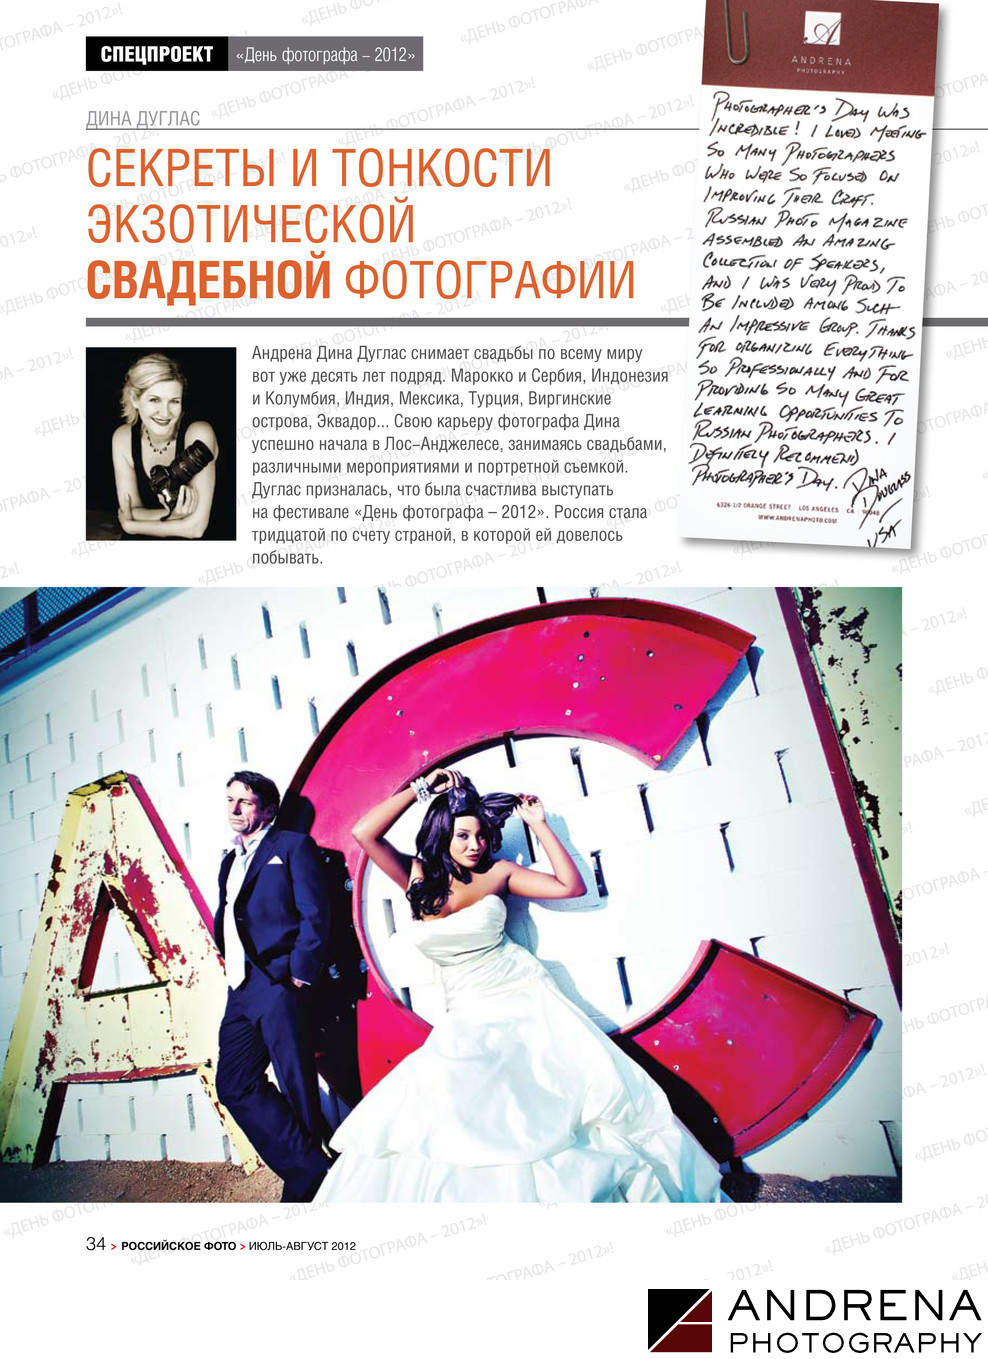 Russian Photo Magazine Andrena Photography Interview